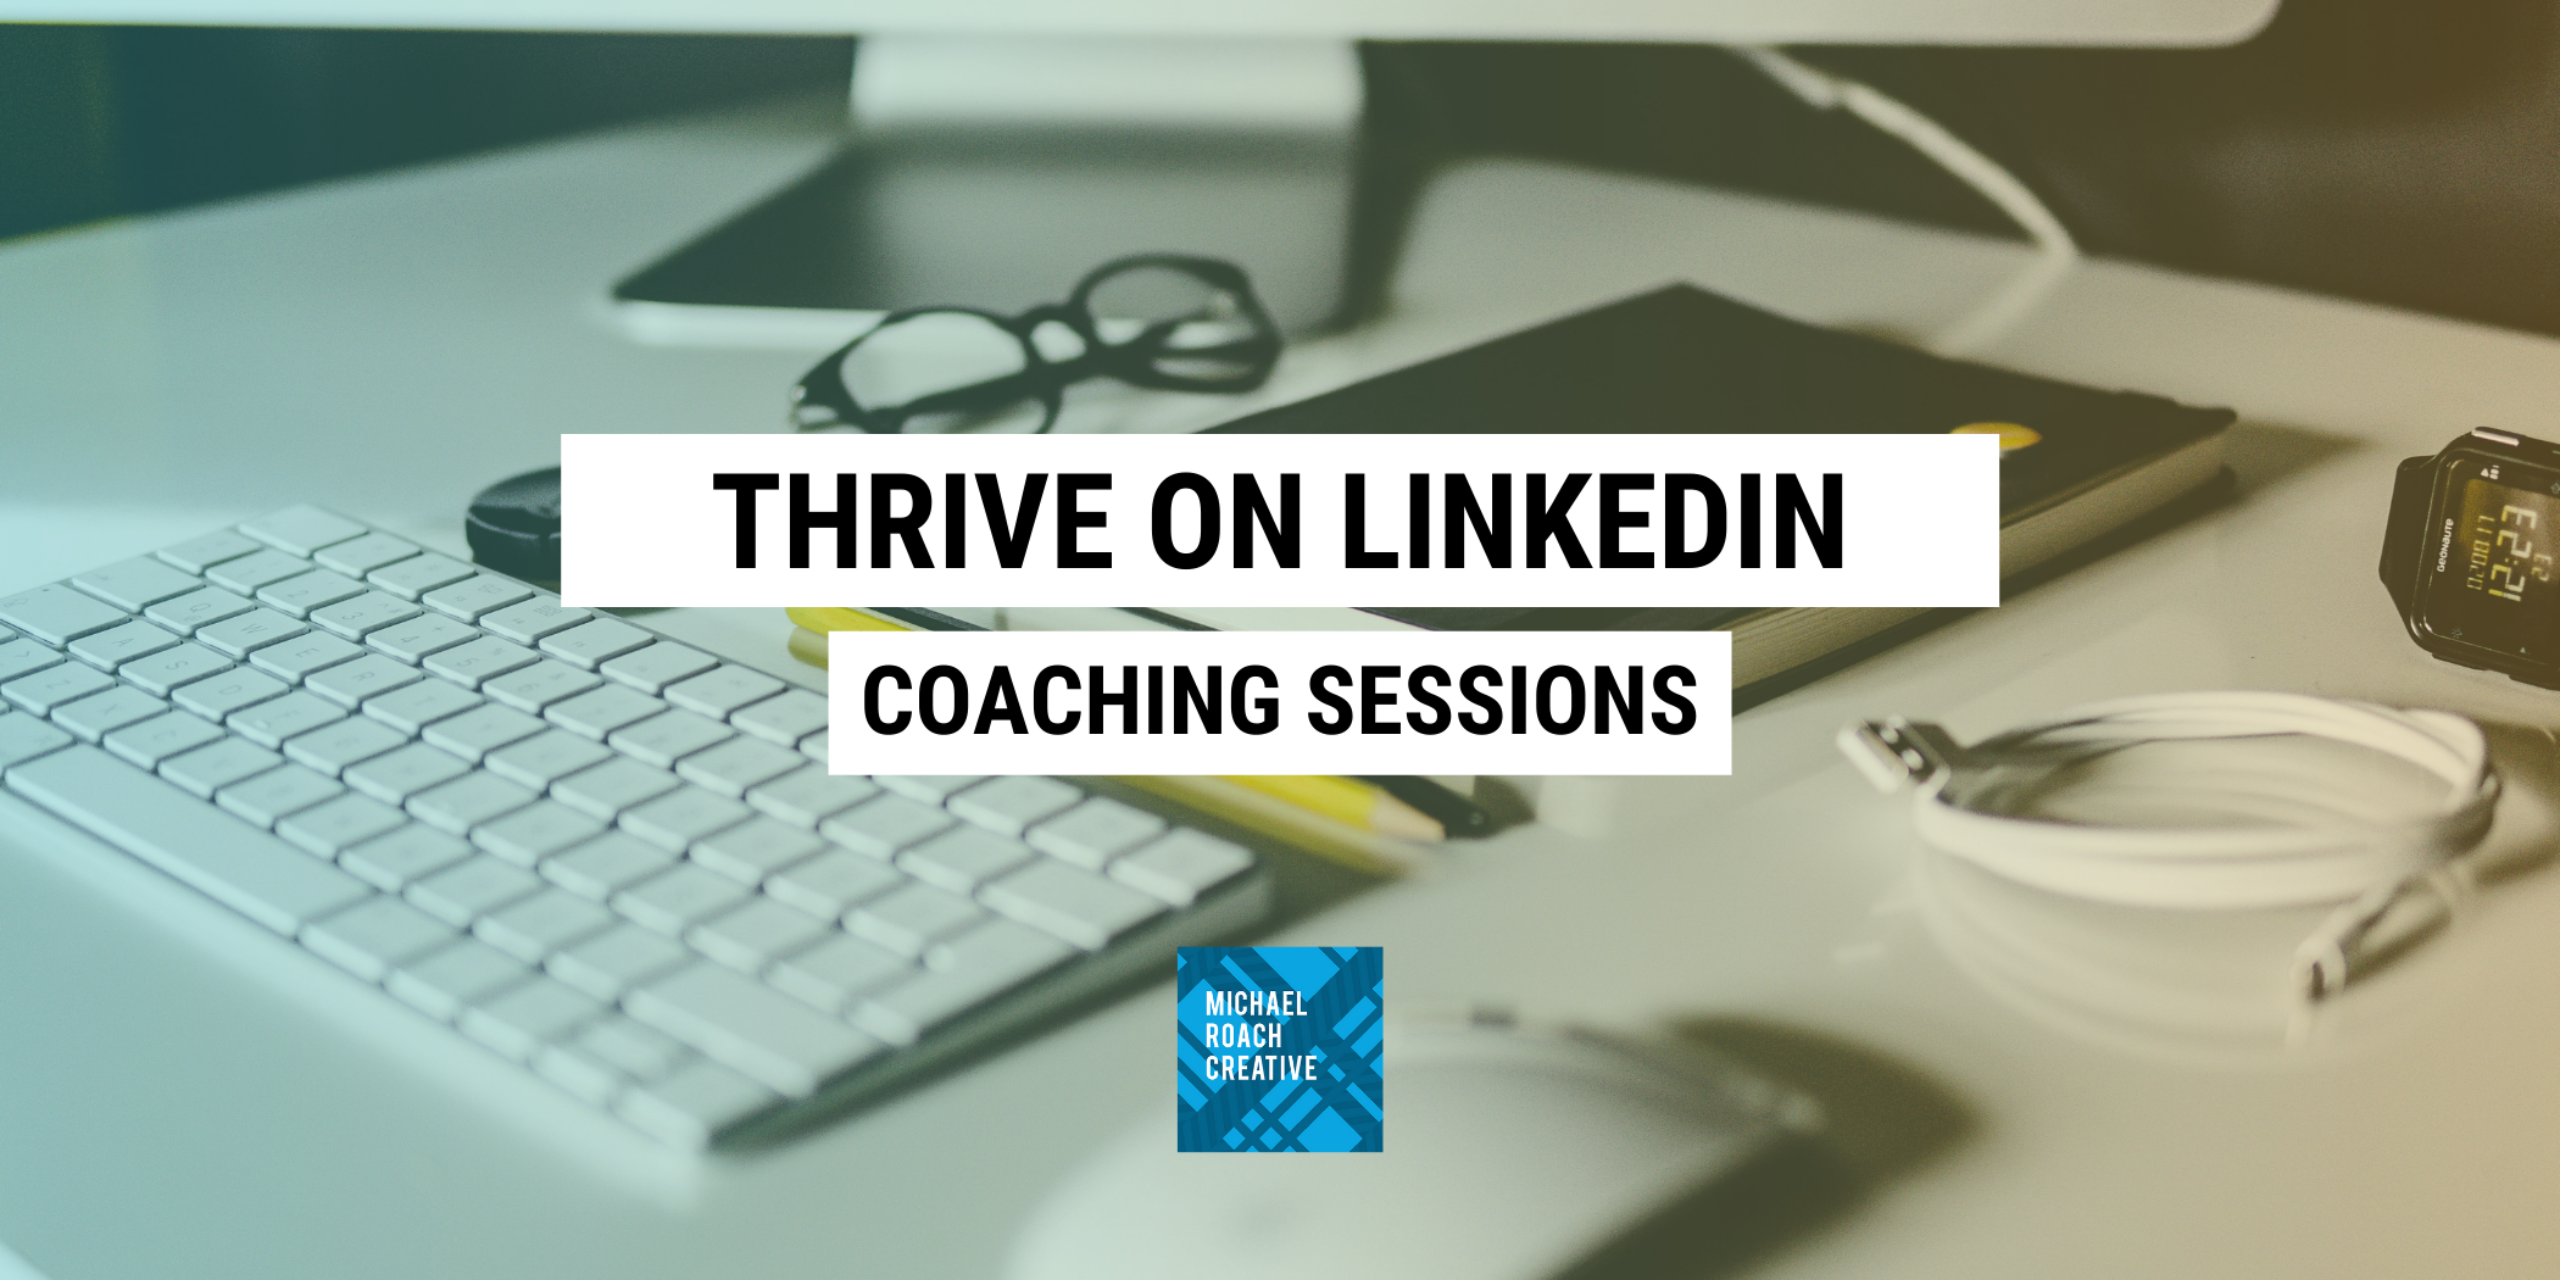 Thrive On LinkedIn Coaching Sessions